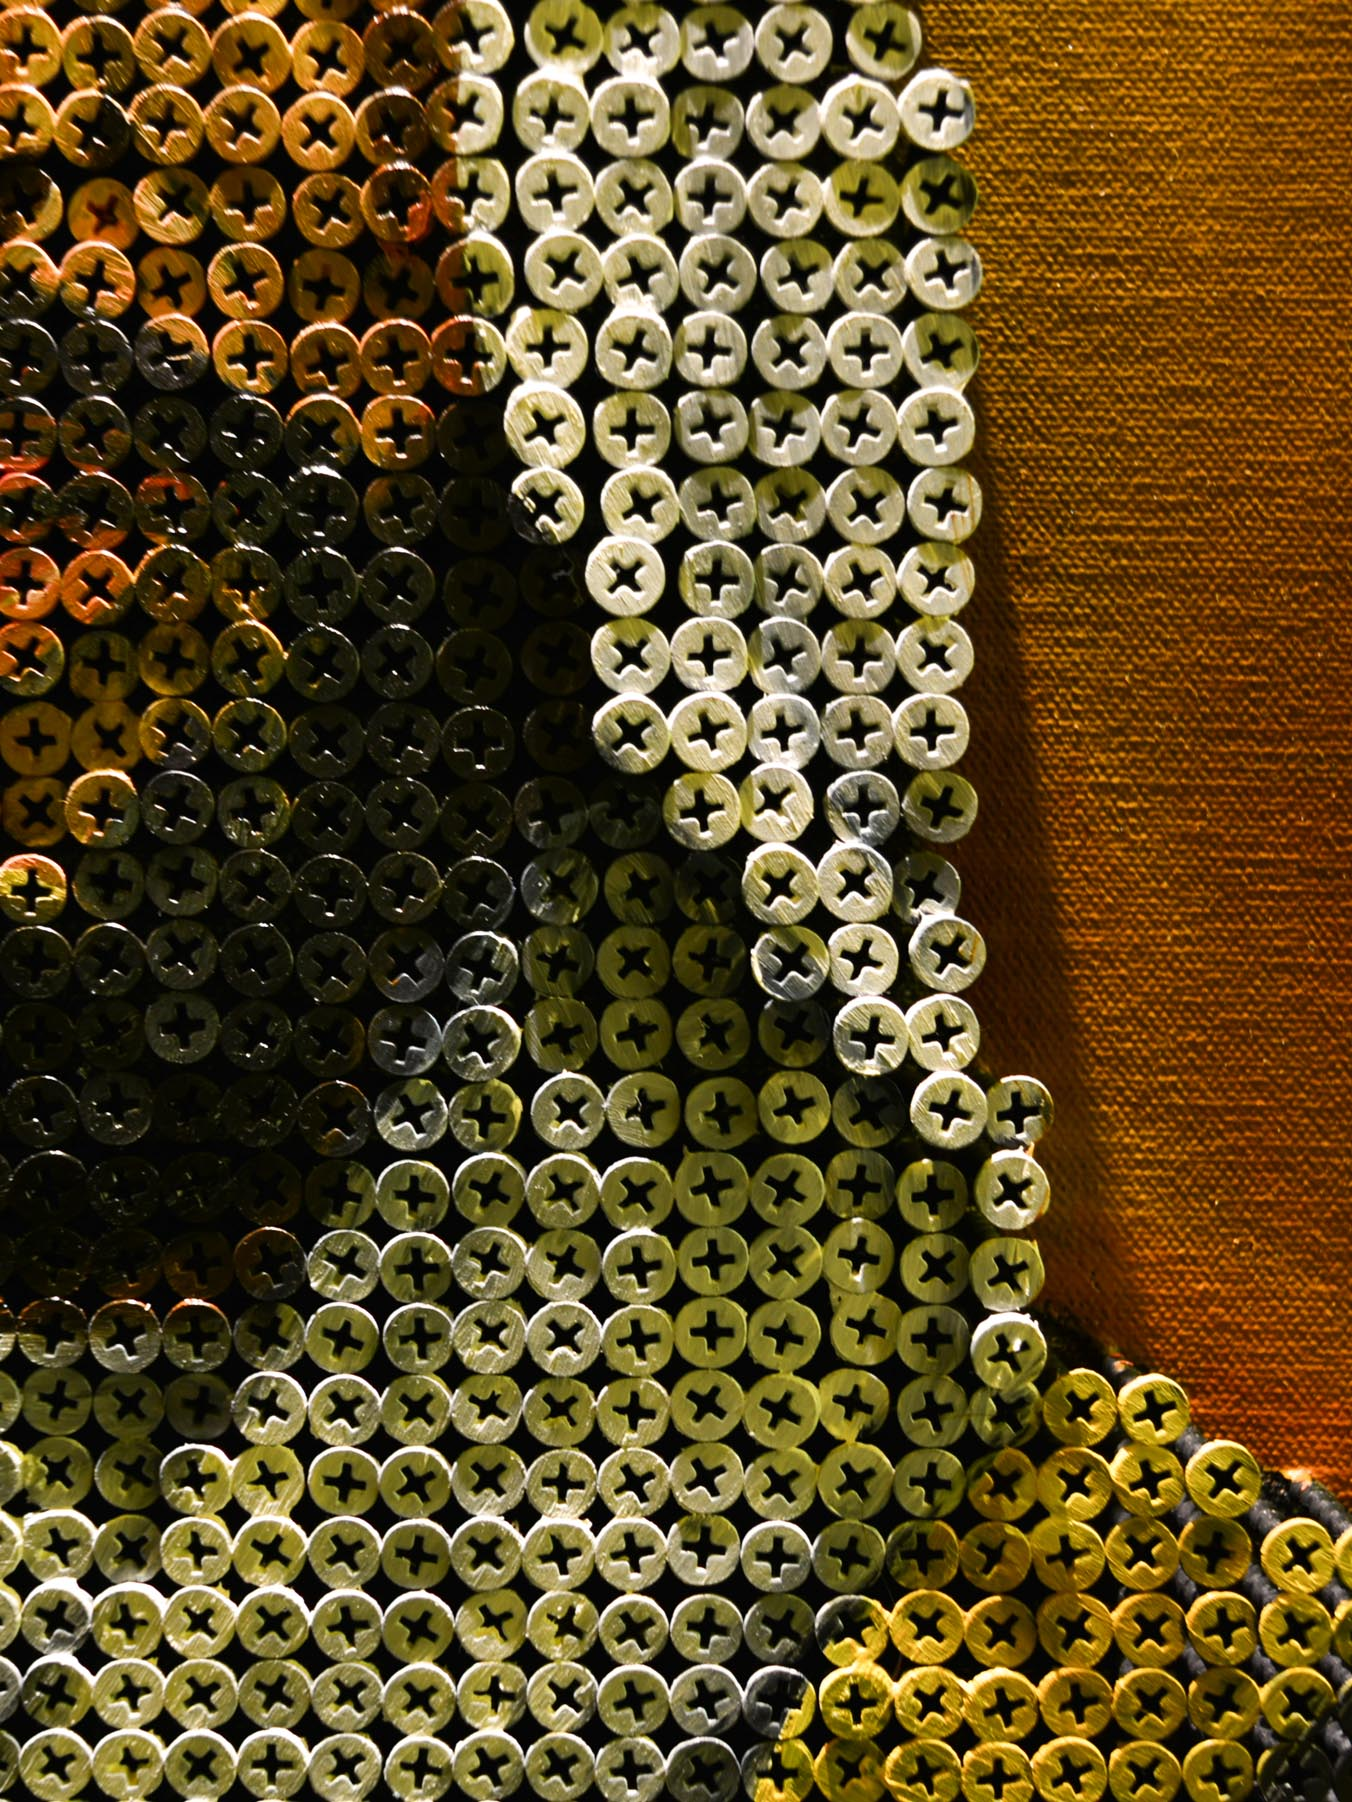 05-capsule-arts-projects-72-by-hues-sheikh-portraits-02.jpg